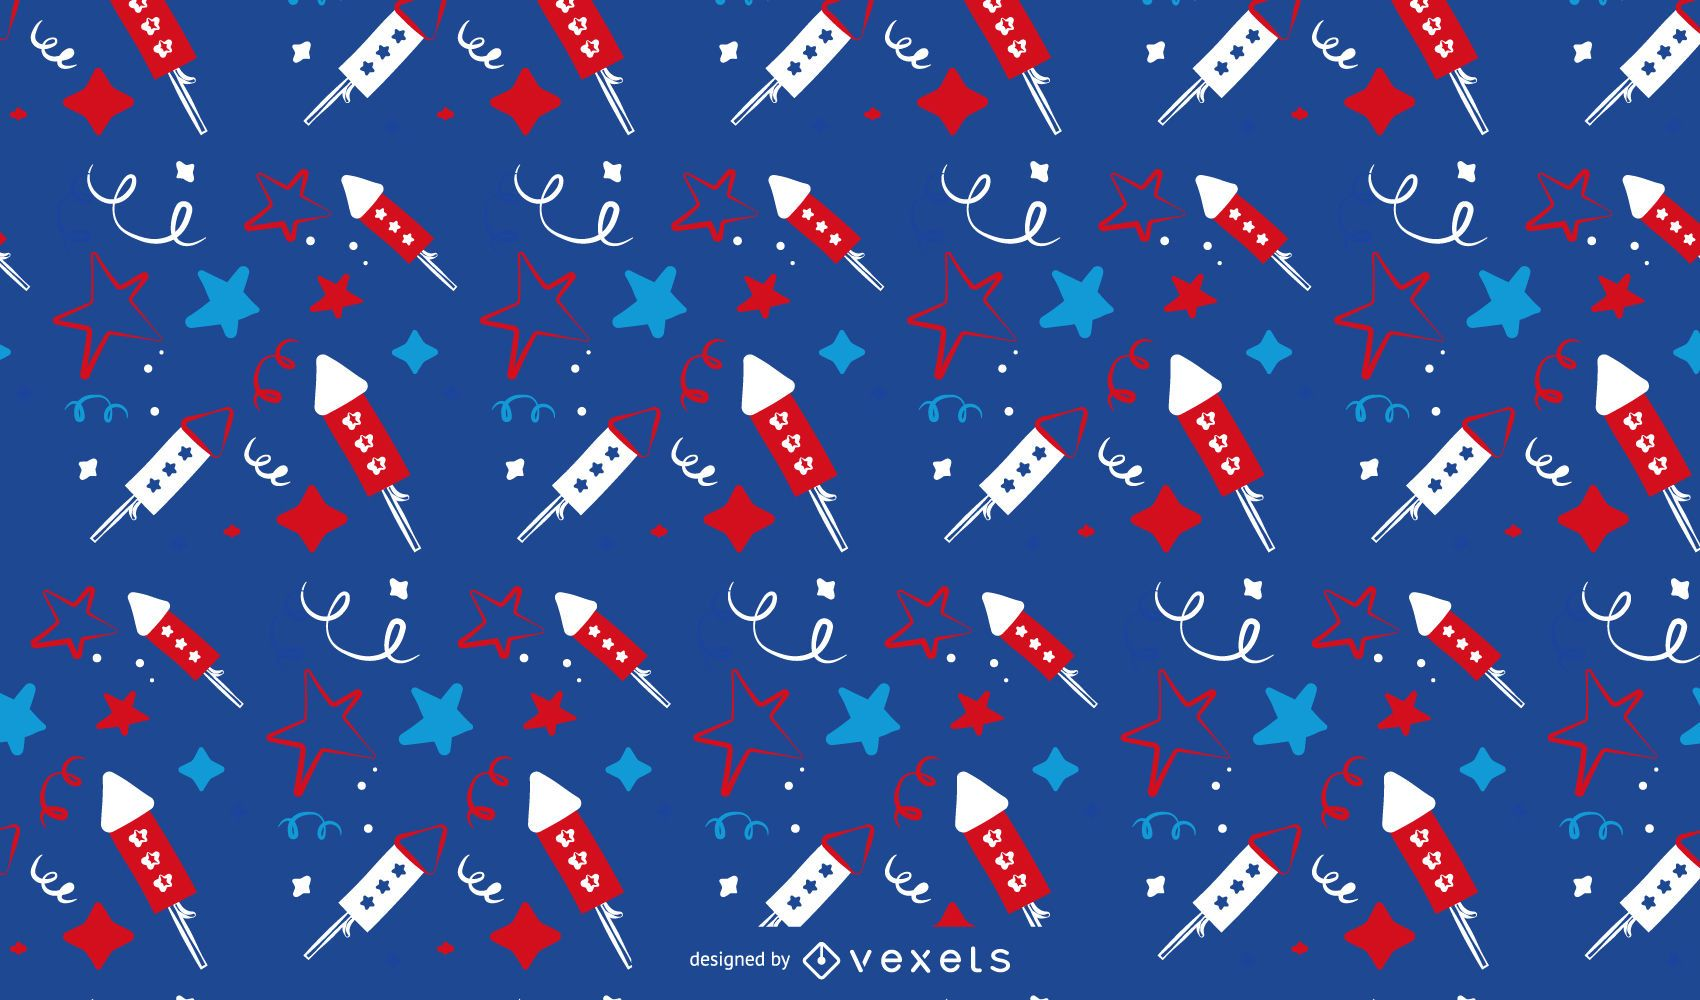 Colorful rocket and star pattern